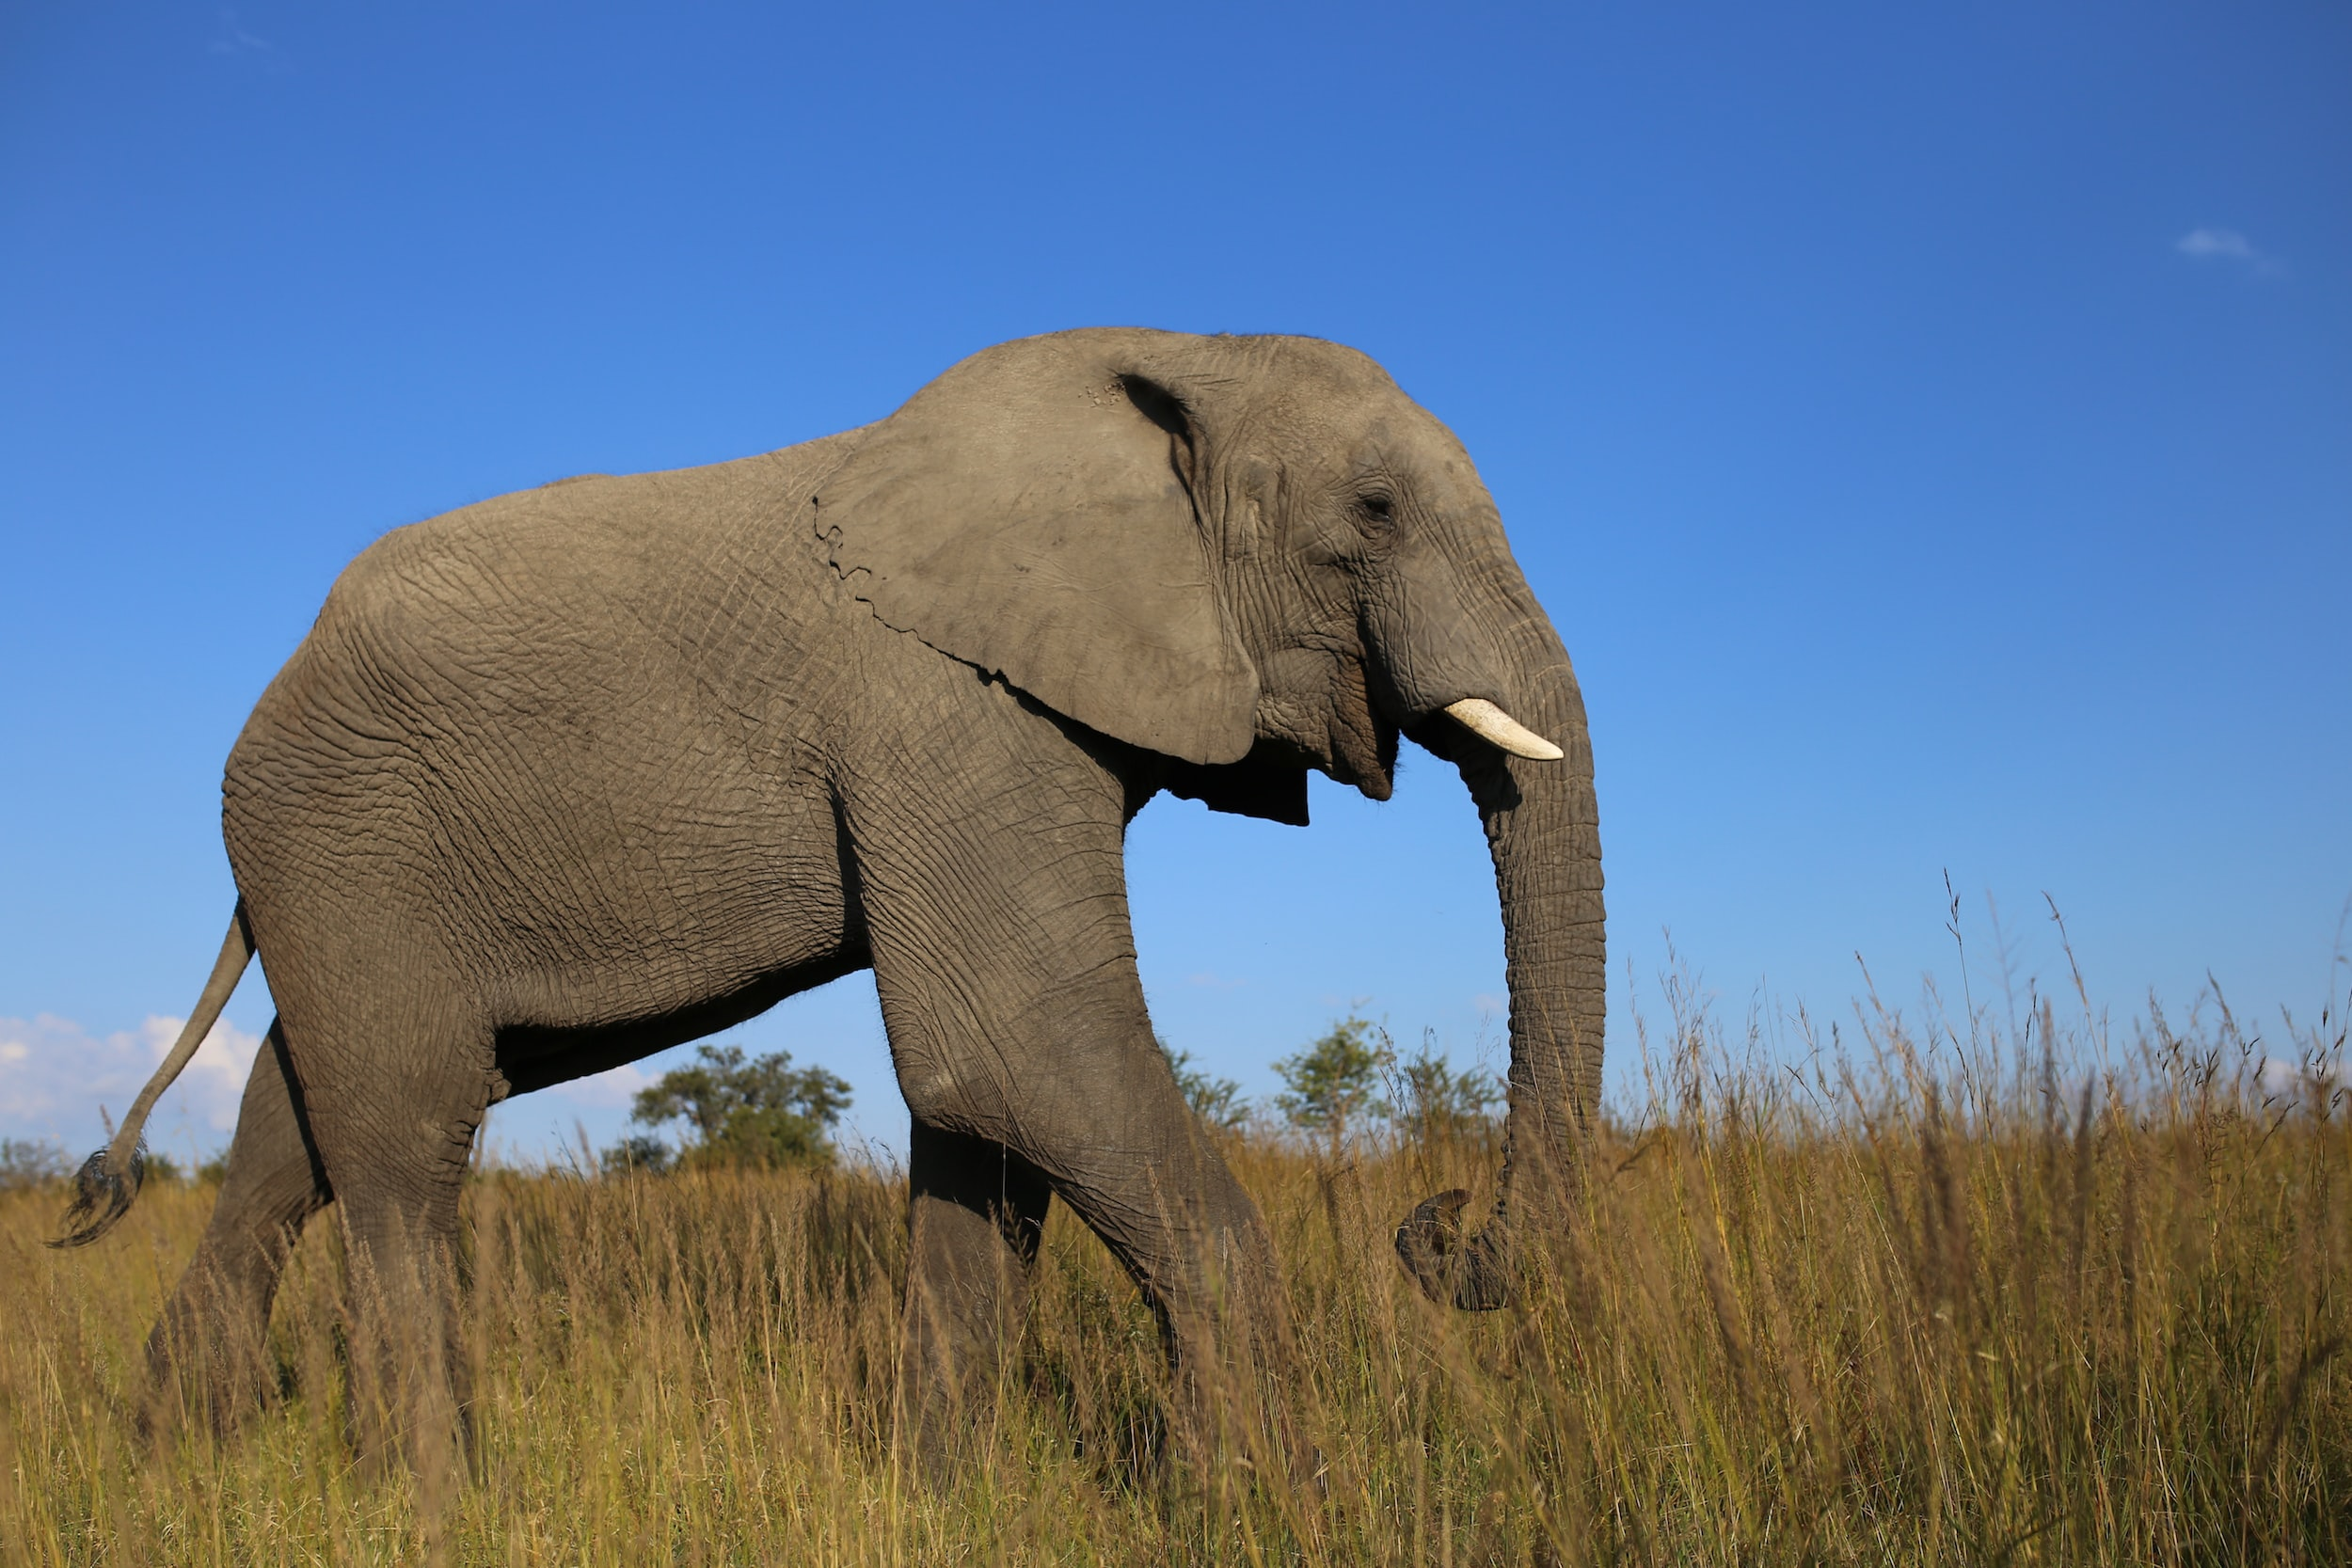 A happy looking elephant strolling across the savannah